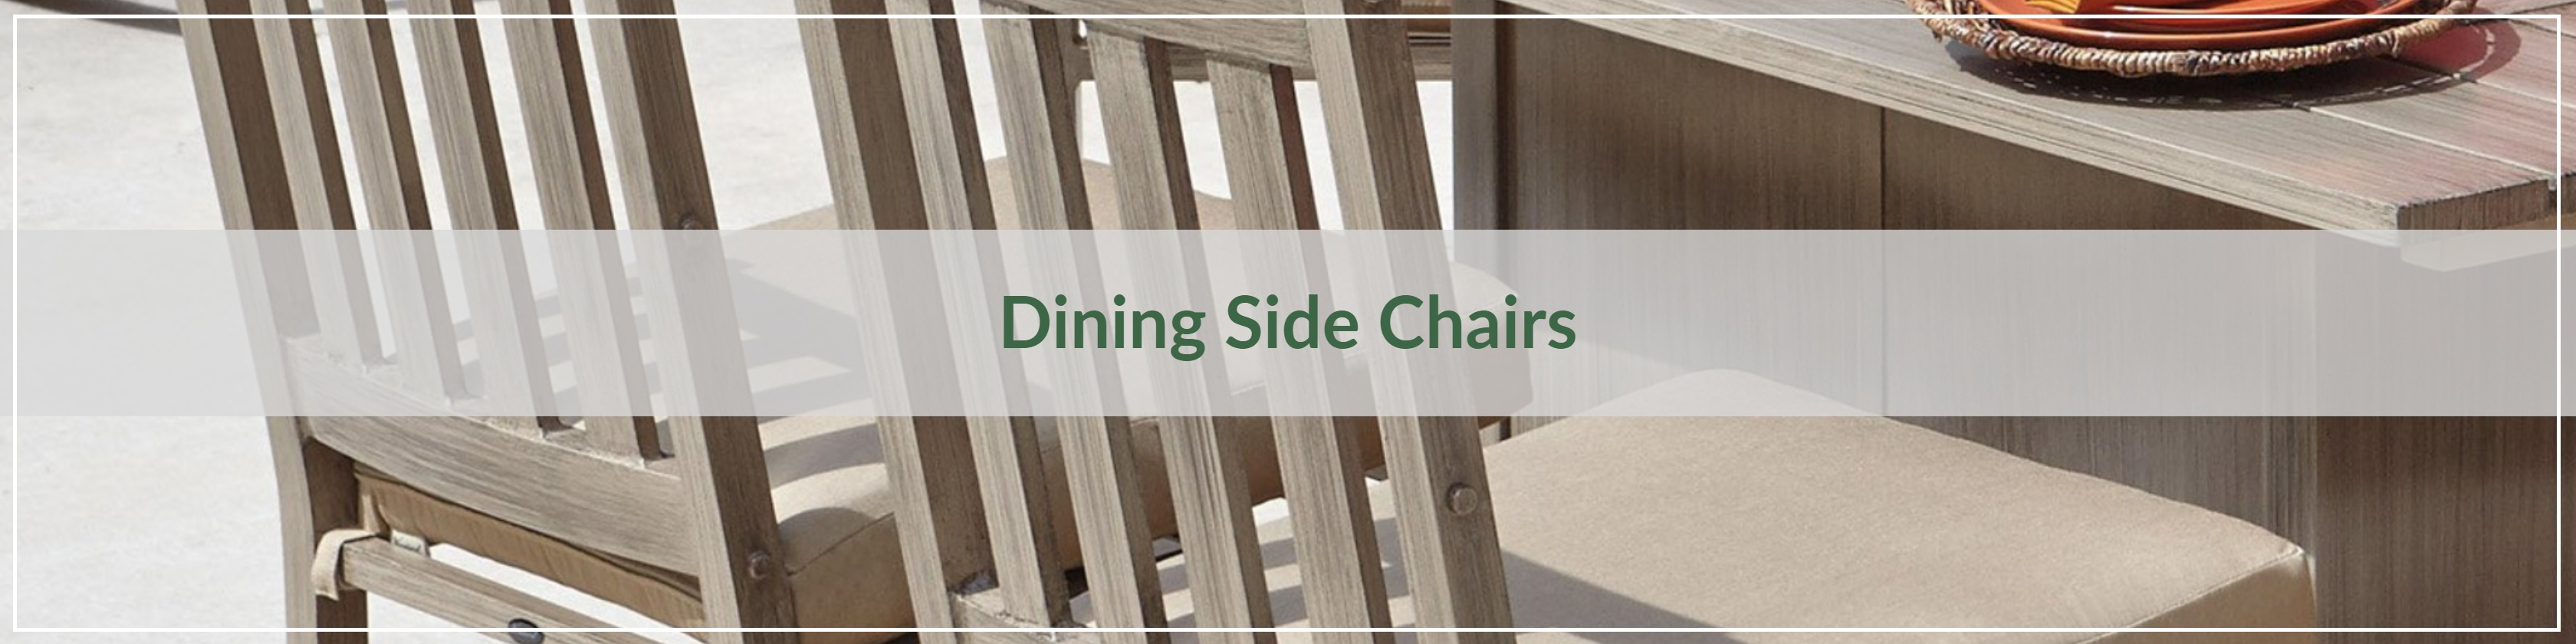 Outdoor Dining Side Chairs